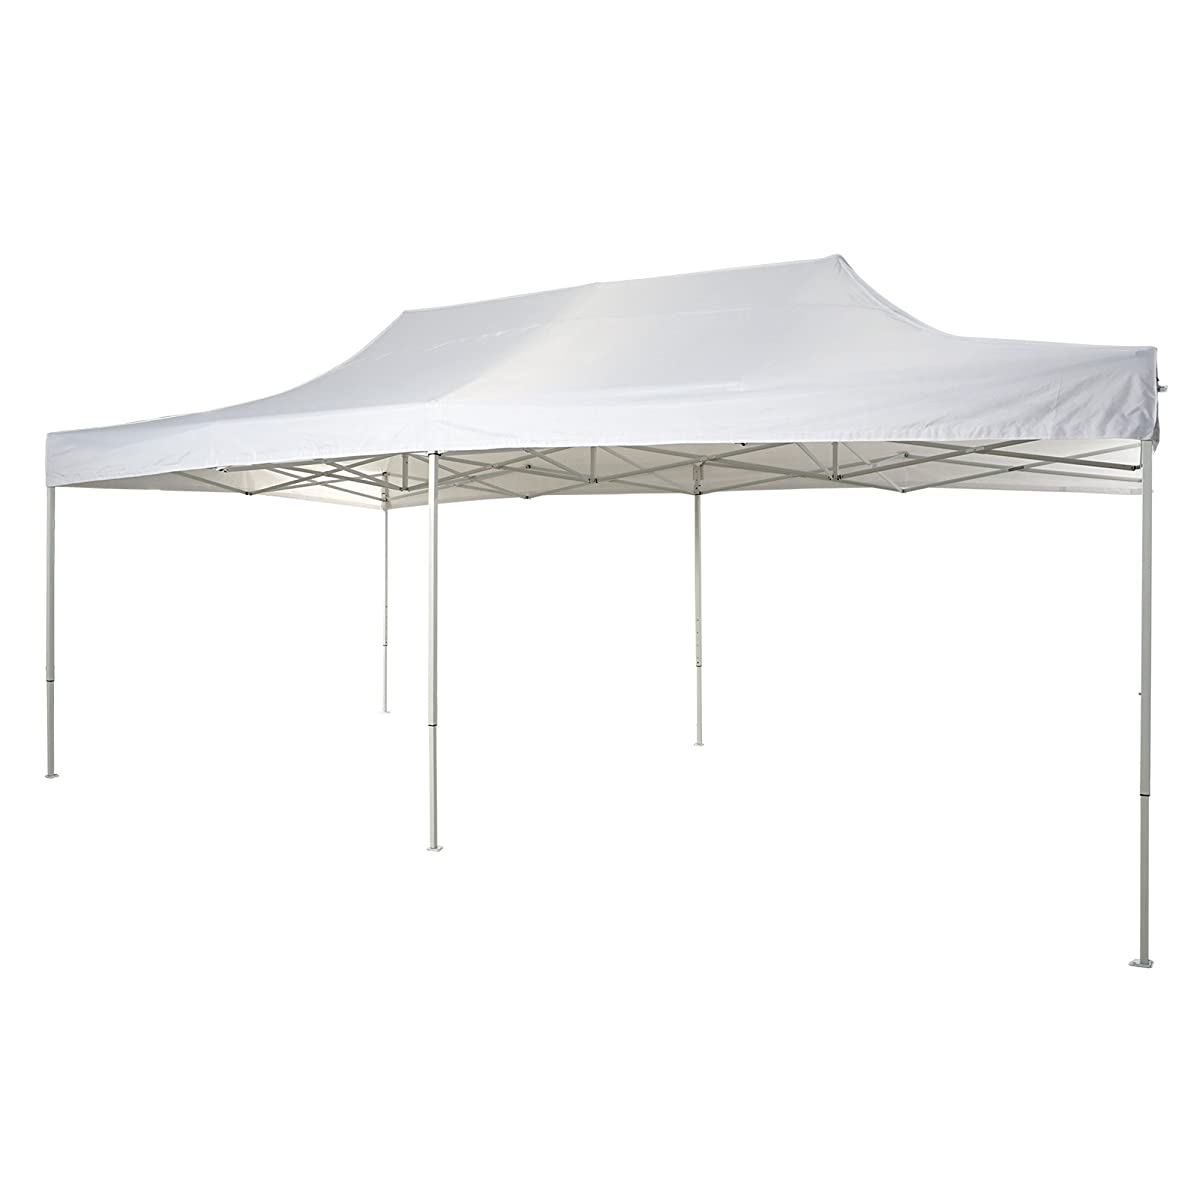 Patio Commercial Canopy White Steel Frame Heavy Duty Pop Up Party ...